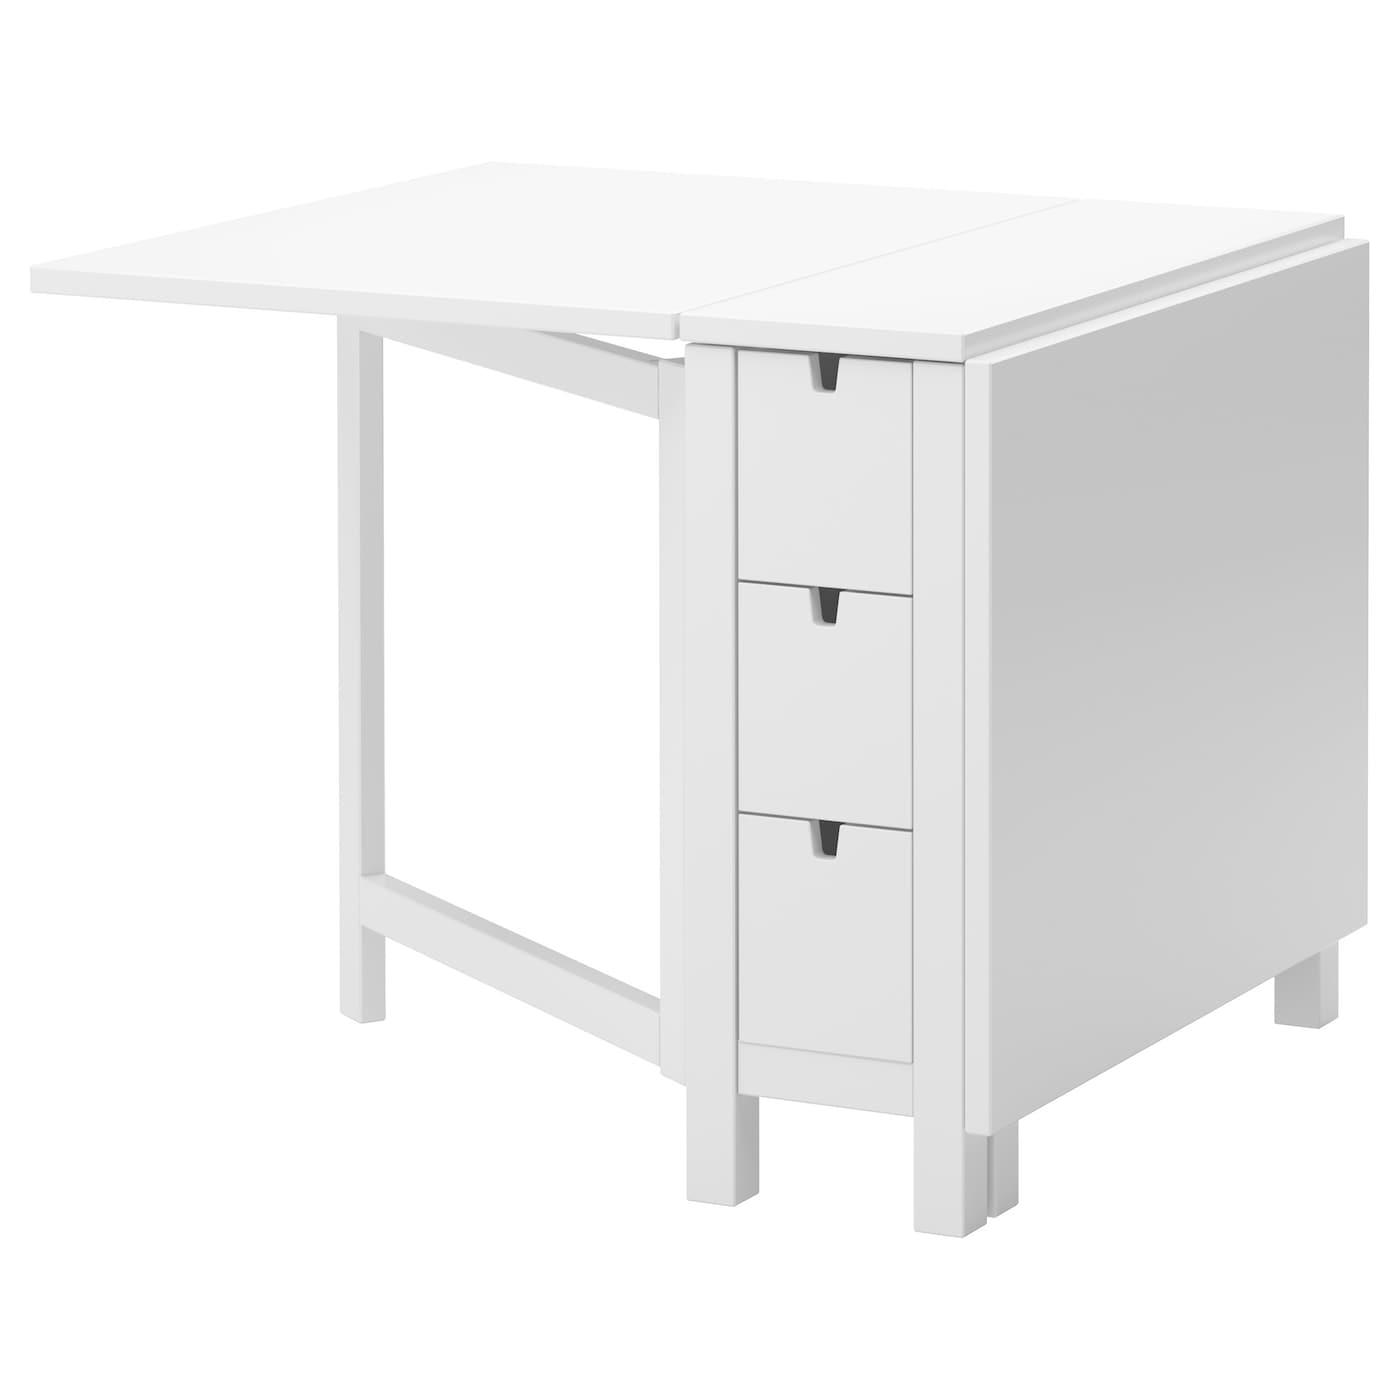 White Dining Table Ikea: NORDEN Gateleg Table White 26/89/152 X 80 Cm